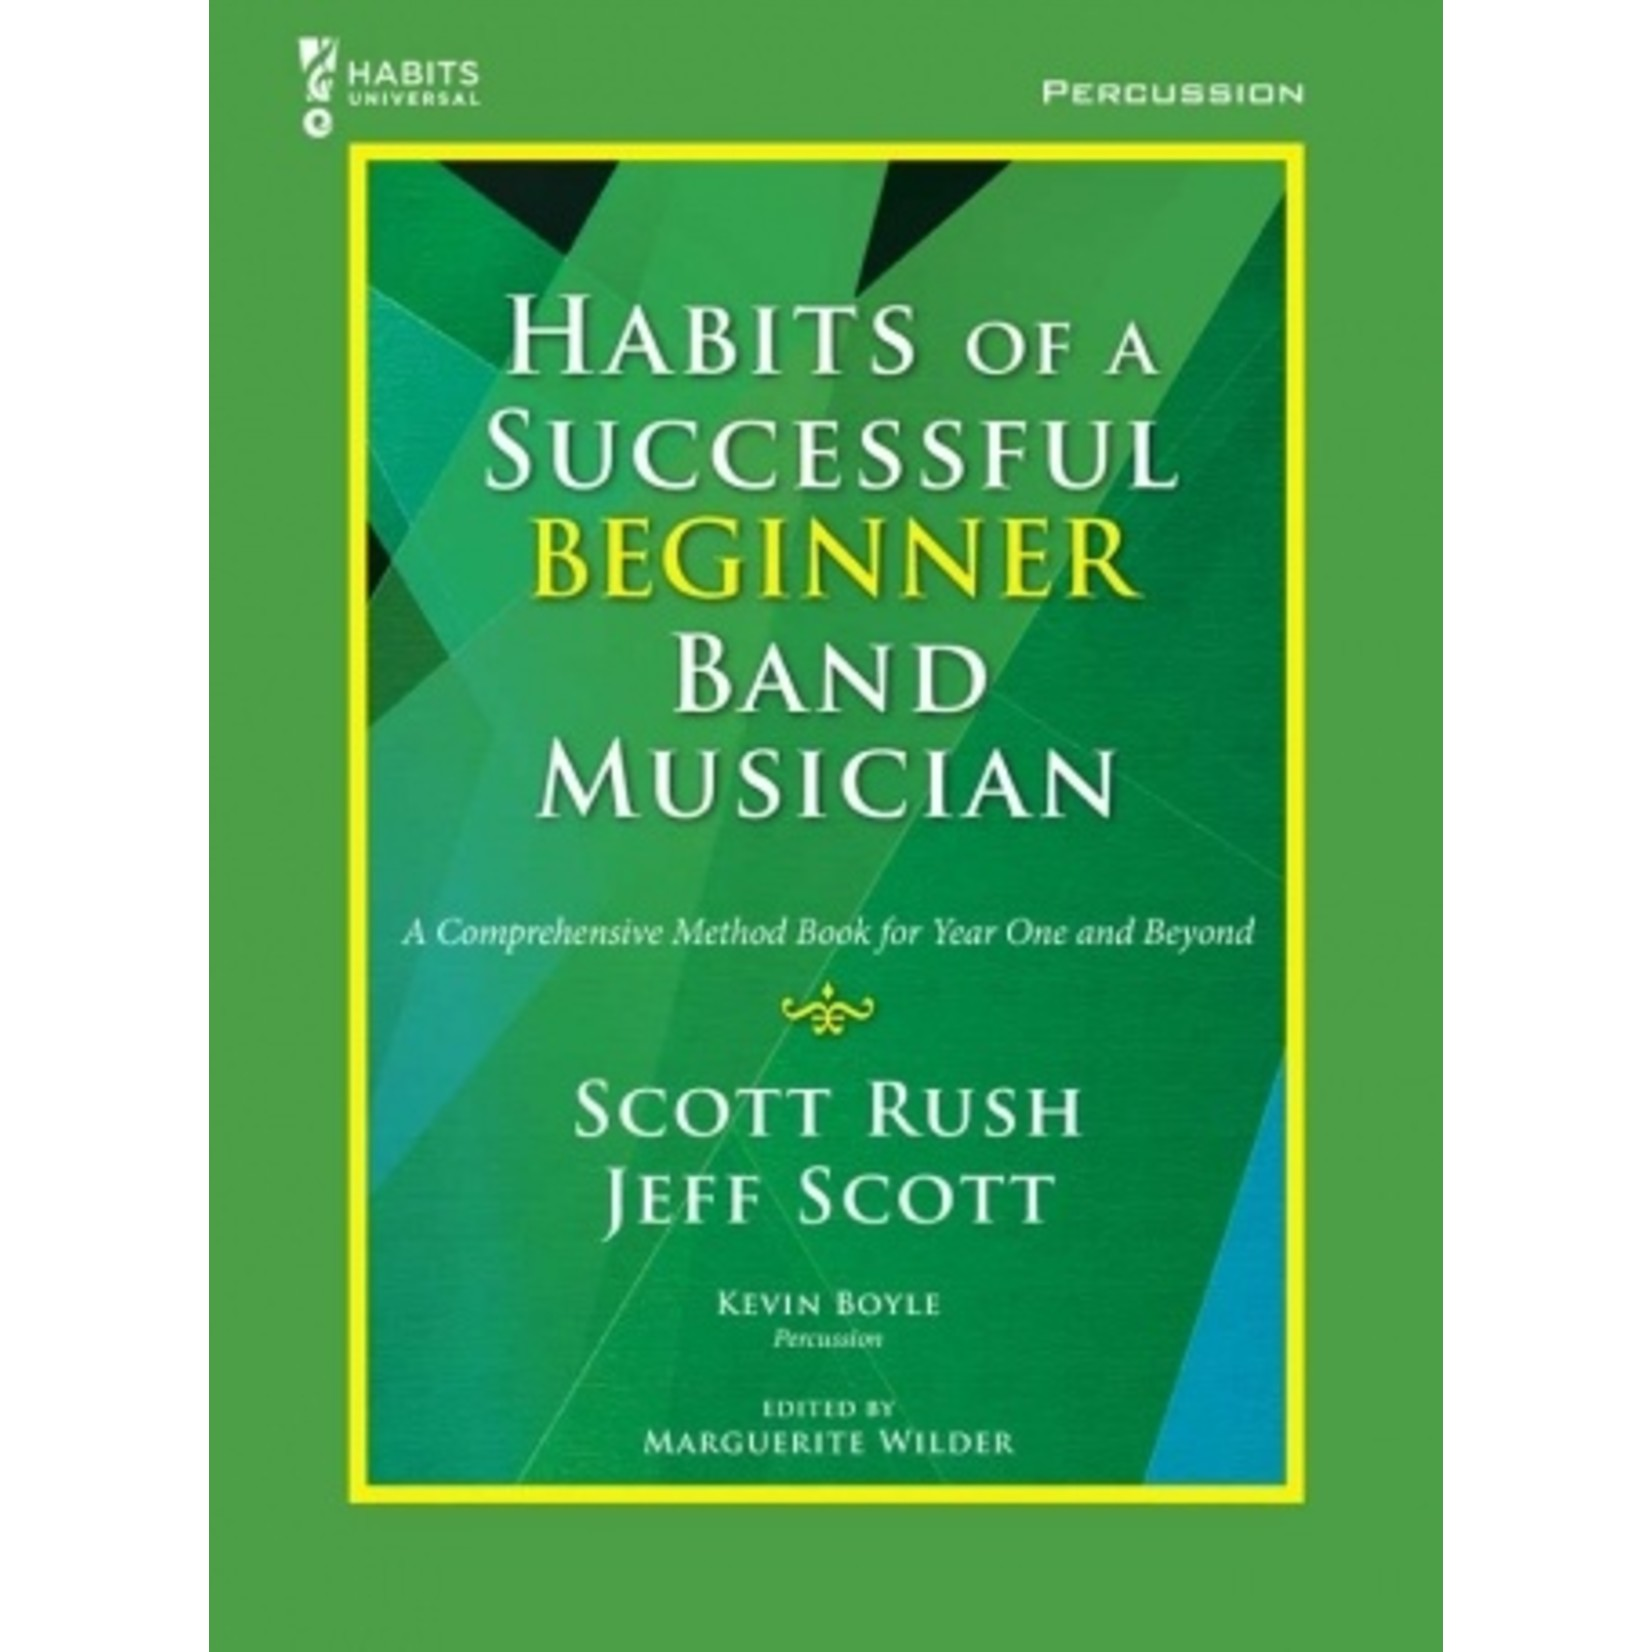 Habits of a Successful Beginner Band Musician - Percussion